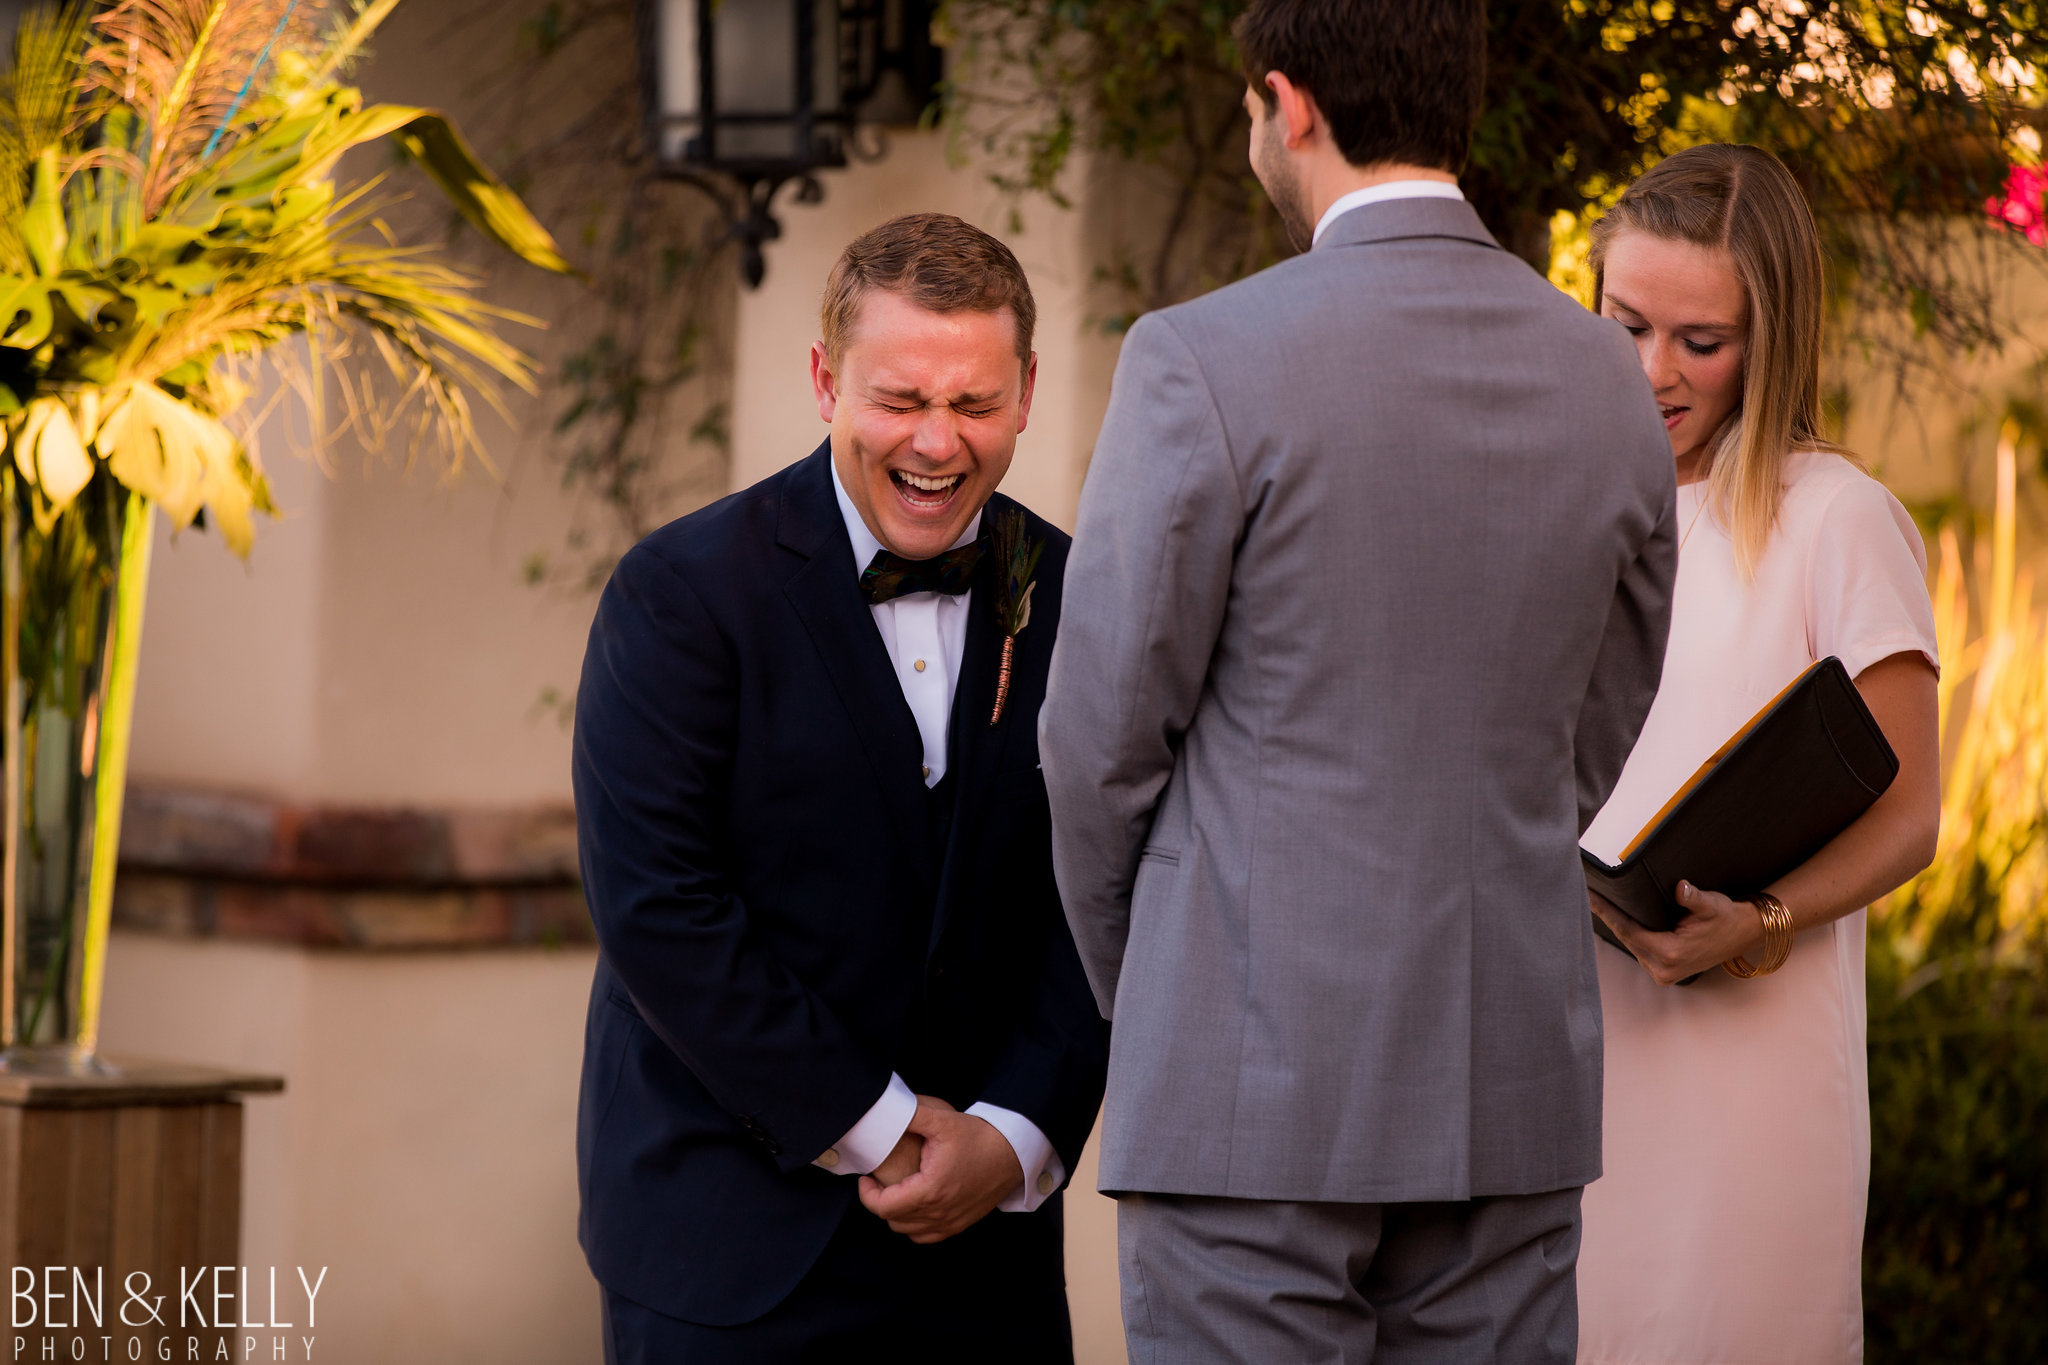 15 funny vows laughing groom wedding ceremony friend officiant Life Design Events photo by Ben and Kelly Photography.jpg